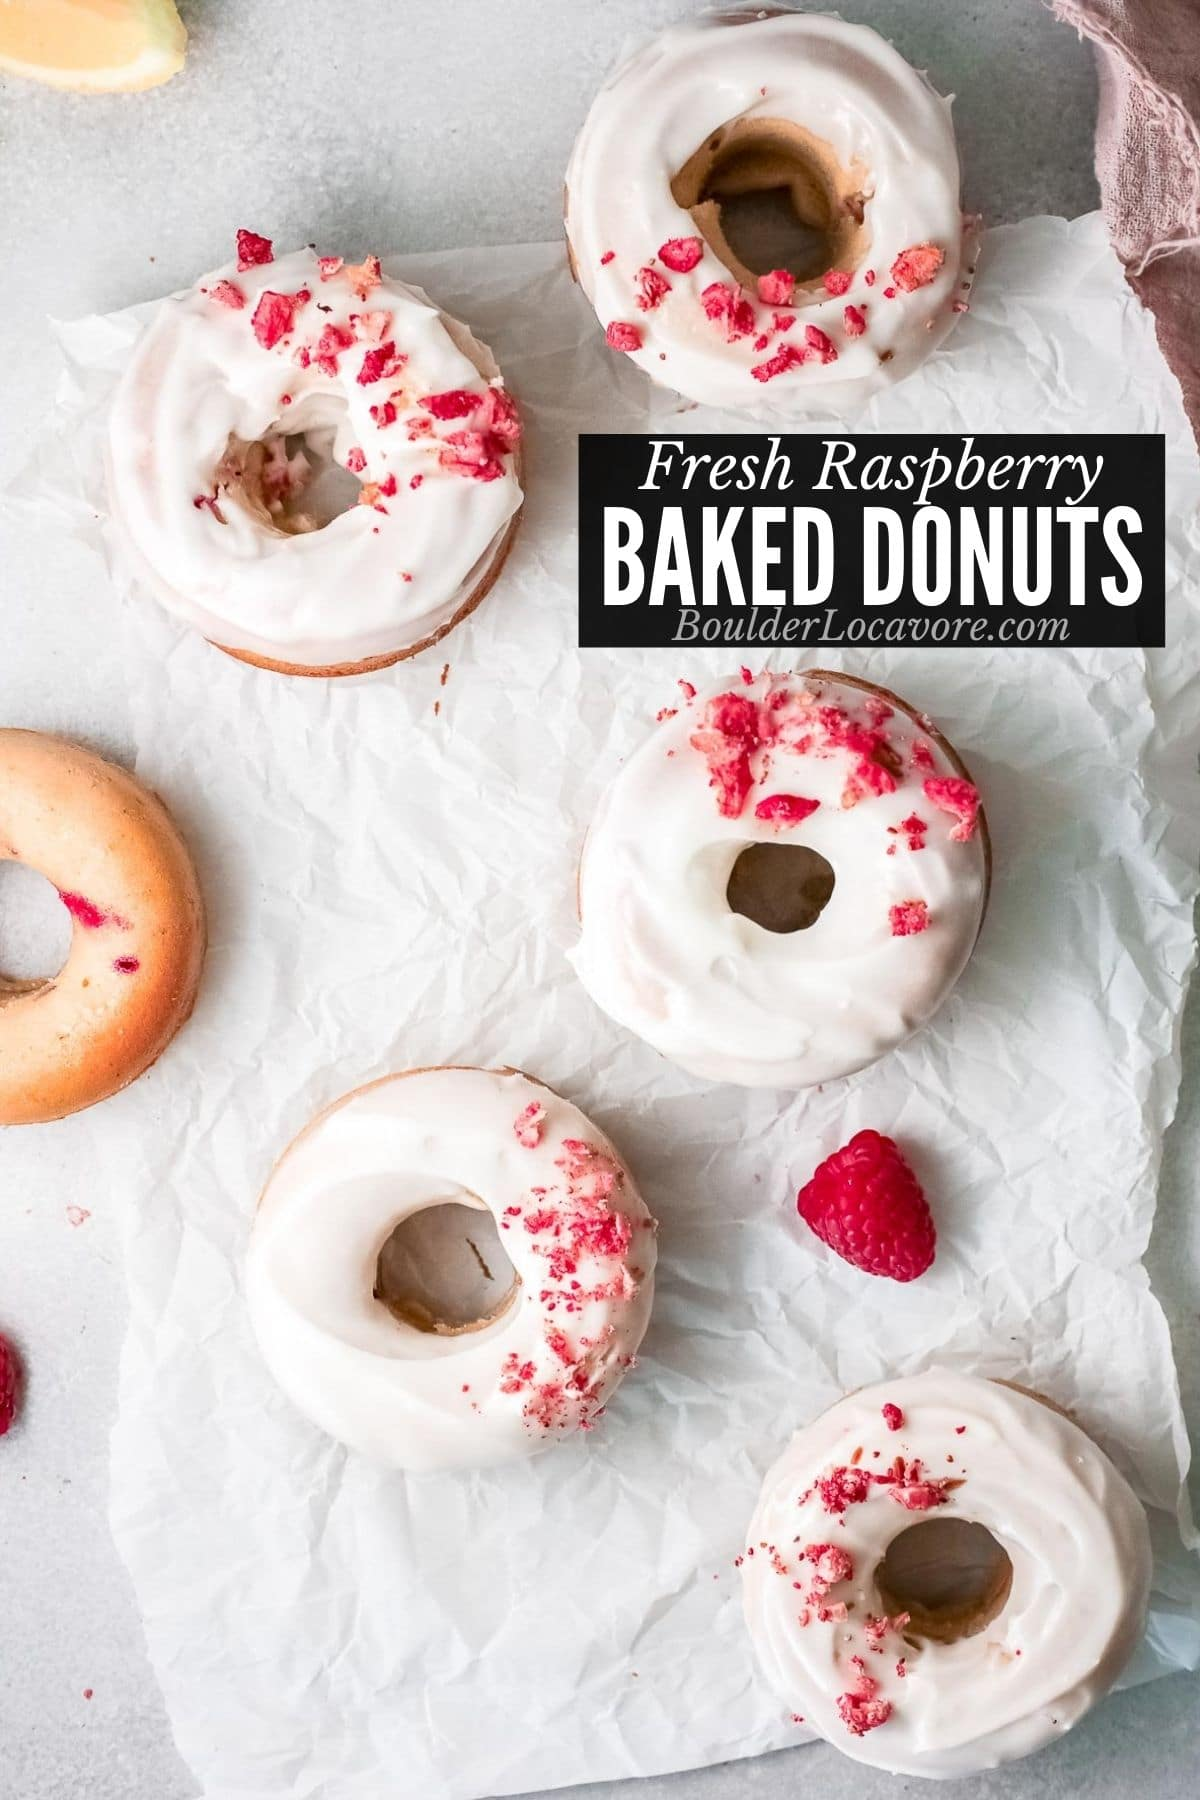 BAKED DOUGHNUTS TITLE IMAGE